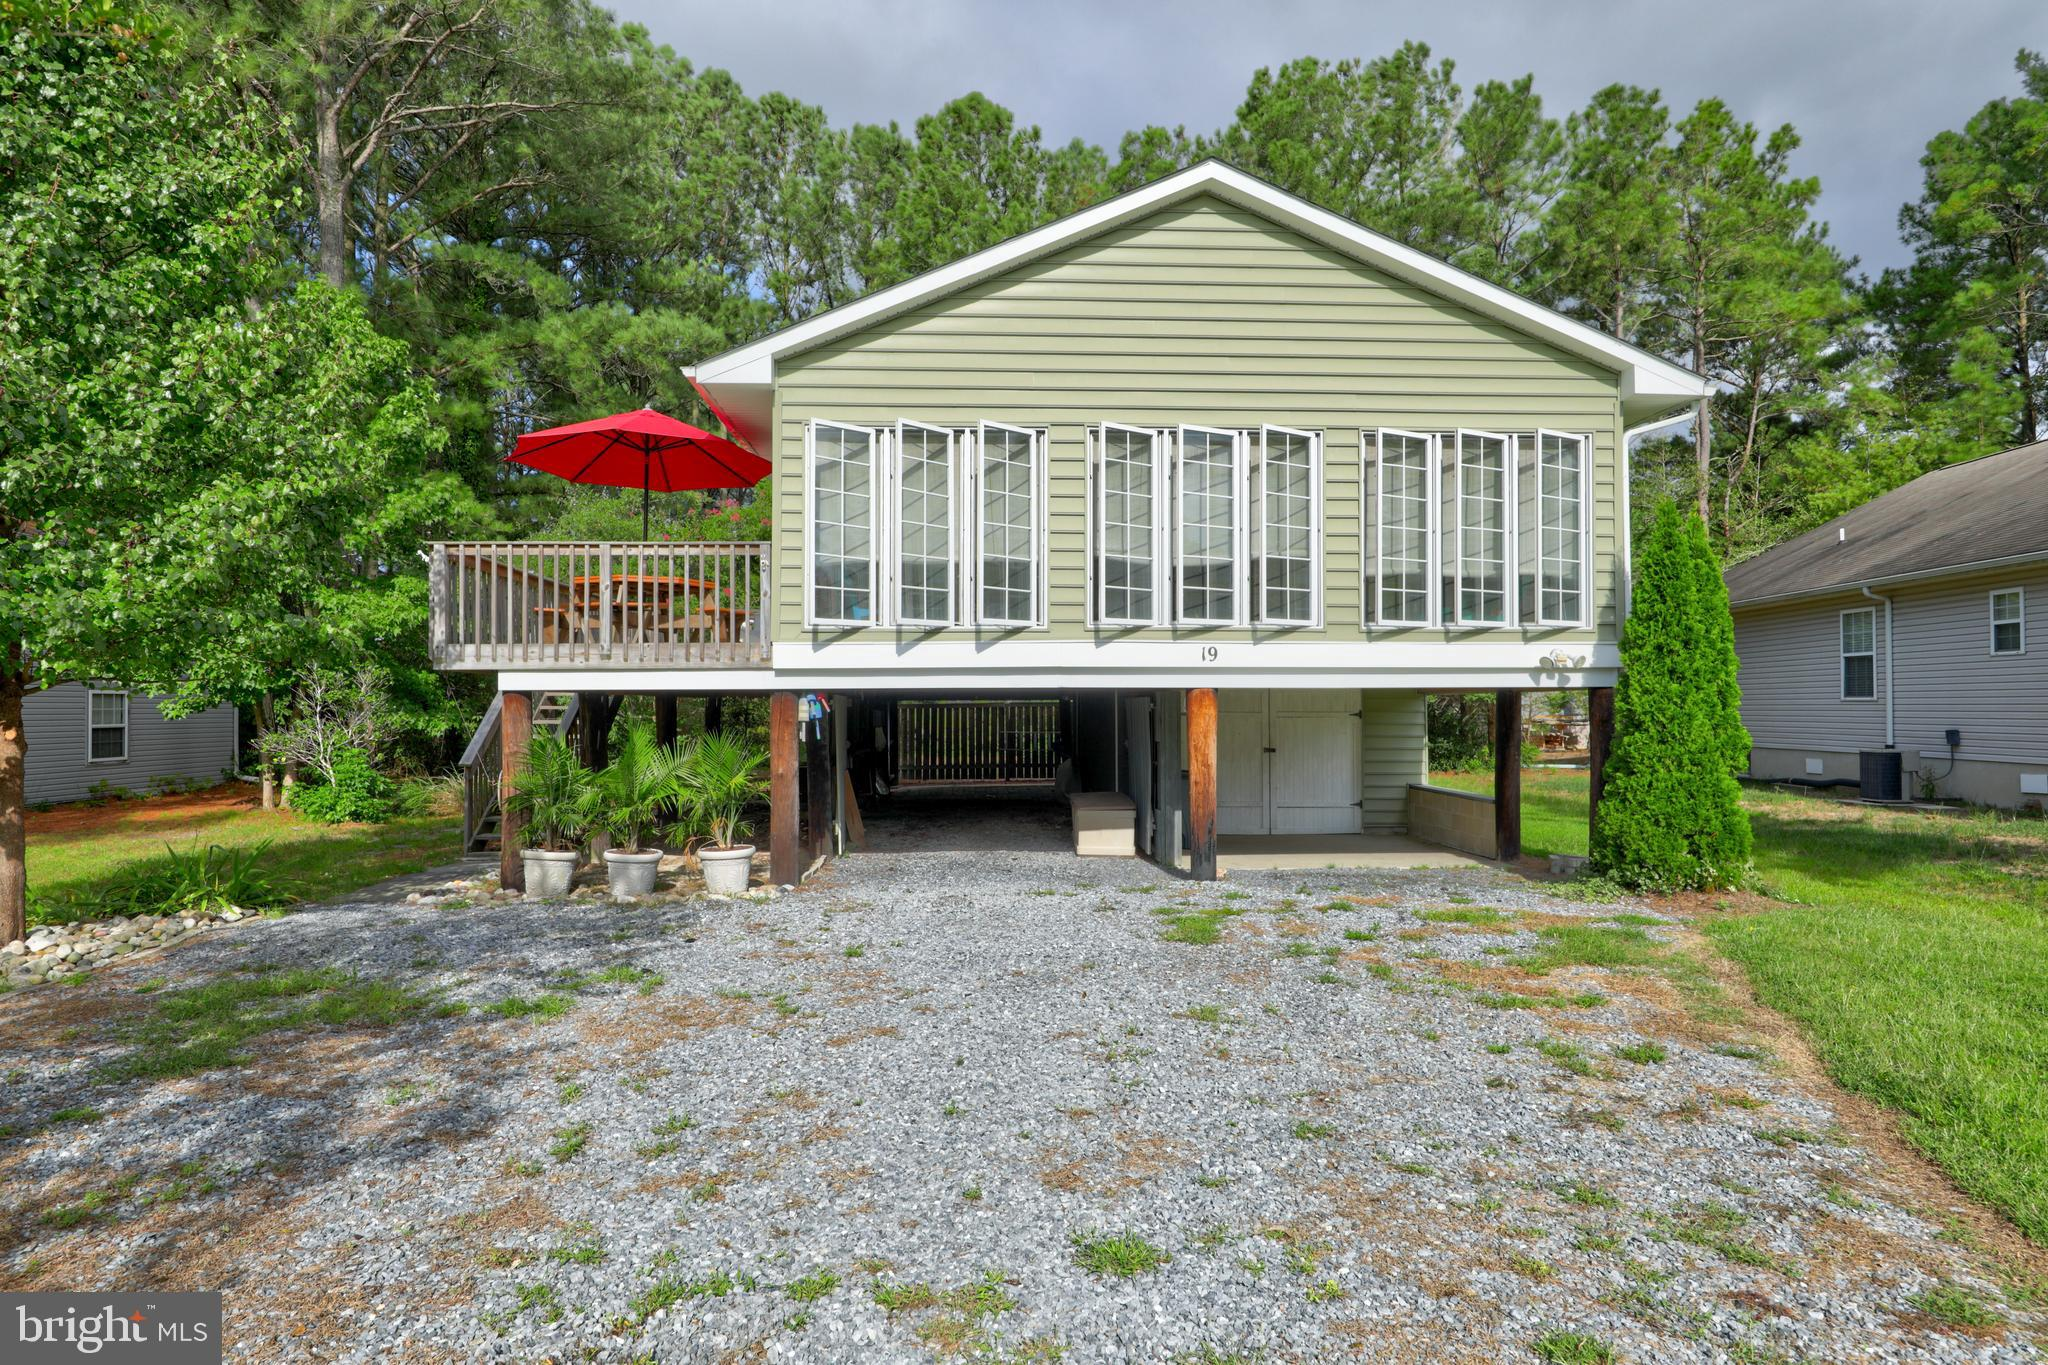 Quintessential Beach Cottage. Excellent location for this raised rancher across the street from the St. Martins River in the very sought after Teal Bay neighborhood in Ocean Pines! Being sold furnished except for a few exclusions - see disclosures. From the moment you pull into your driveway - you know you are at the beach! You have a one-car garage and additional covered parking. Great lower level storage (for all your water & beach toys) and an outdoor shower. Up the steps, you have an ample sized sun deck - which is great for entertaining. The home has an open floor plan with a sunny Florida room with floor to ceiling windows. Never rented and used as a summer vacation home. The roof was just replaced in September 2020! Lovely updates include new vinyl siding, new plantation shutters, added breakfast nook in the kitchen area, new hot water heater, new washing machine, large custom-crafted outdoor shower, and new gutters. Come check out this unique, adorable beach home! ** Ocean Pines Information**  Ocean Pines is a residential community nestled on Maryland's Eastern Shore in northern Worcester County, featuring more than nine miles of waterfront property on 3,000 acres of wooded areas. Amenities include a beachfront restaurant in Ocean City,  and a public Yacht Club in Ocean Pines. There are also five pools, two marinas, a premier racquet sports complex, and a Robert Trent Jones Sr.-designed championship golf course. Originally established in 1968, today the community has 8,452 platted lots and is home to 12,000 full-time residents and 8,000 part-time residents and guests. In addition,  Ocean Pines has two separate boat launch areas, kayak,  and paddleboard launch areas, bike trails,  multiple recreational parks with picnic and playground areas.